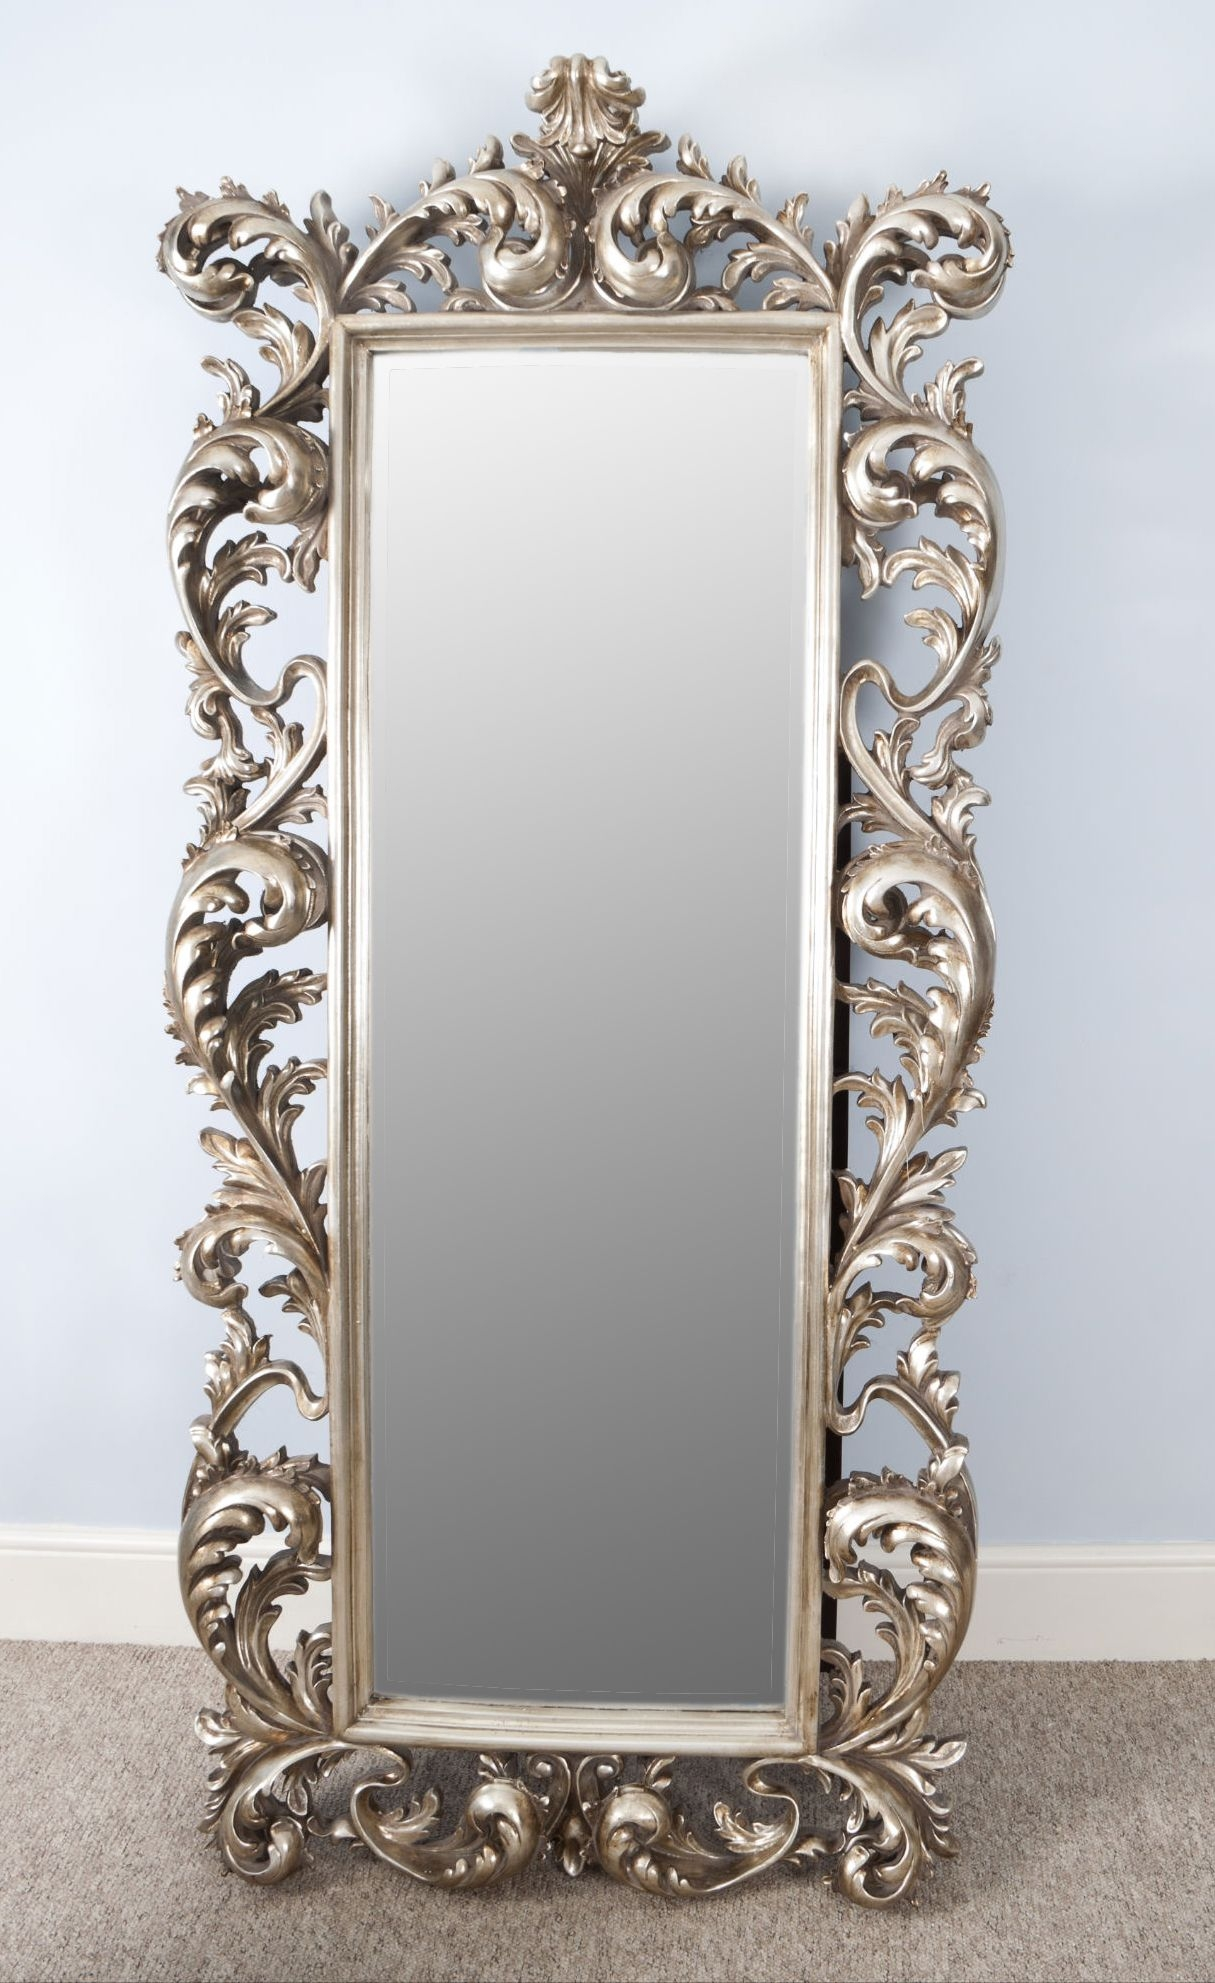 Classic Impression On Antique Wall Mirrors Vwho Regarding Full Length Mirror Antique (View 6 of 15)